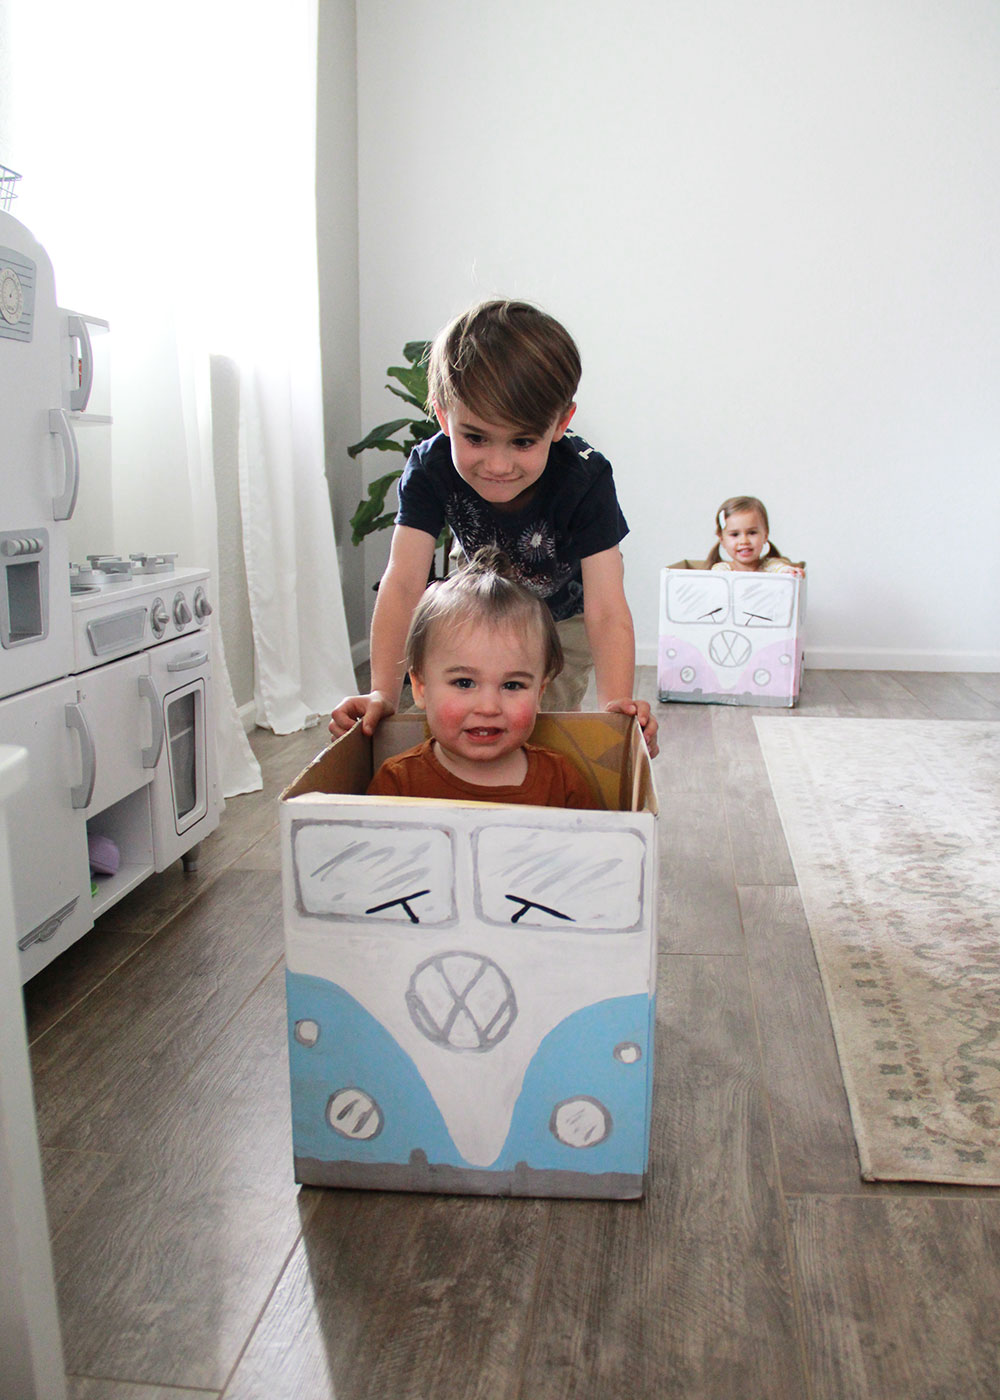 what a creative way to use an old cardboard box - a vw bus!   thelovedesignedlife.com